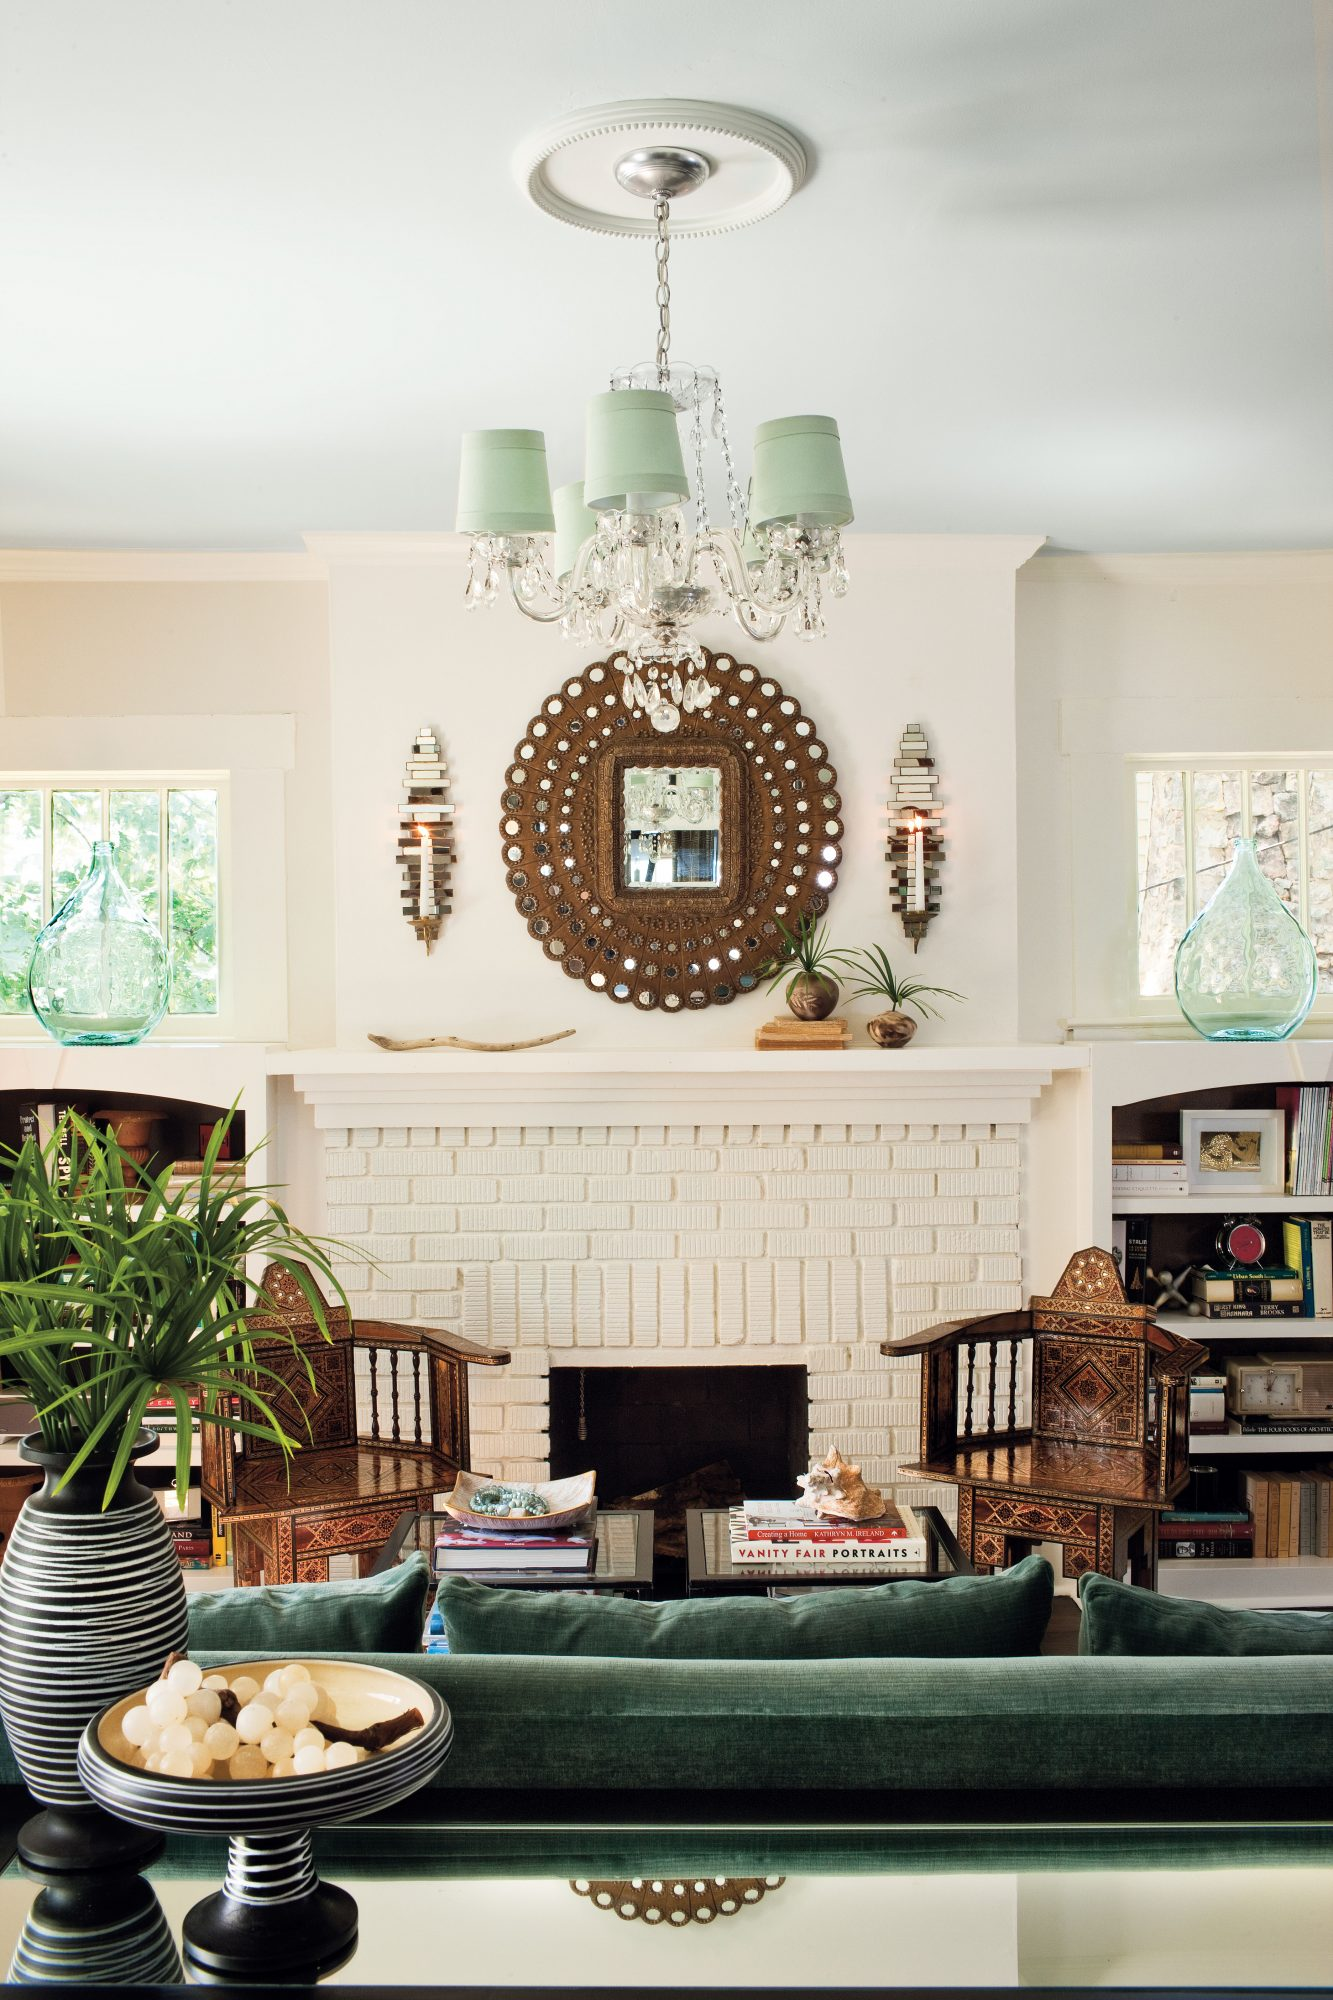 Budget Decorating Ideas: Rethink Mass Retailers